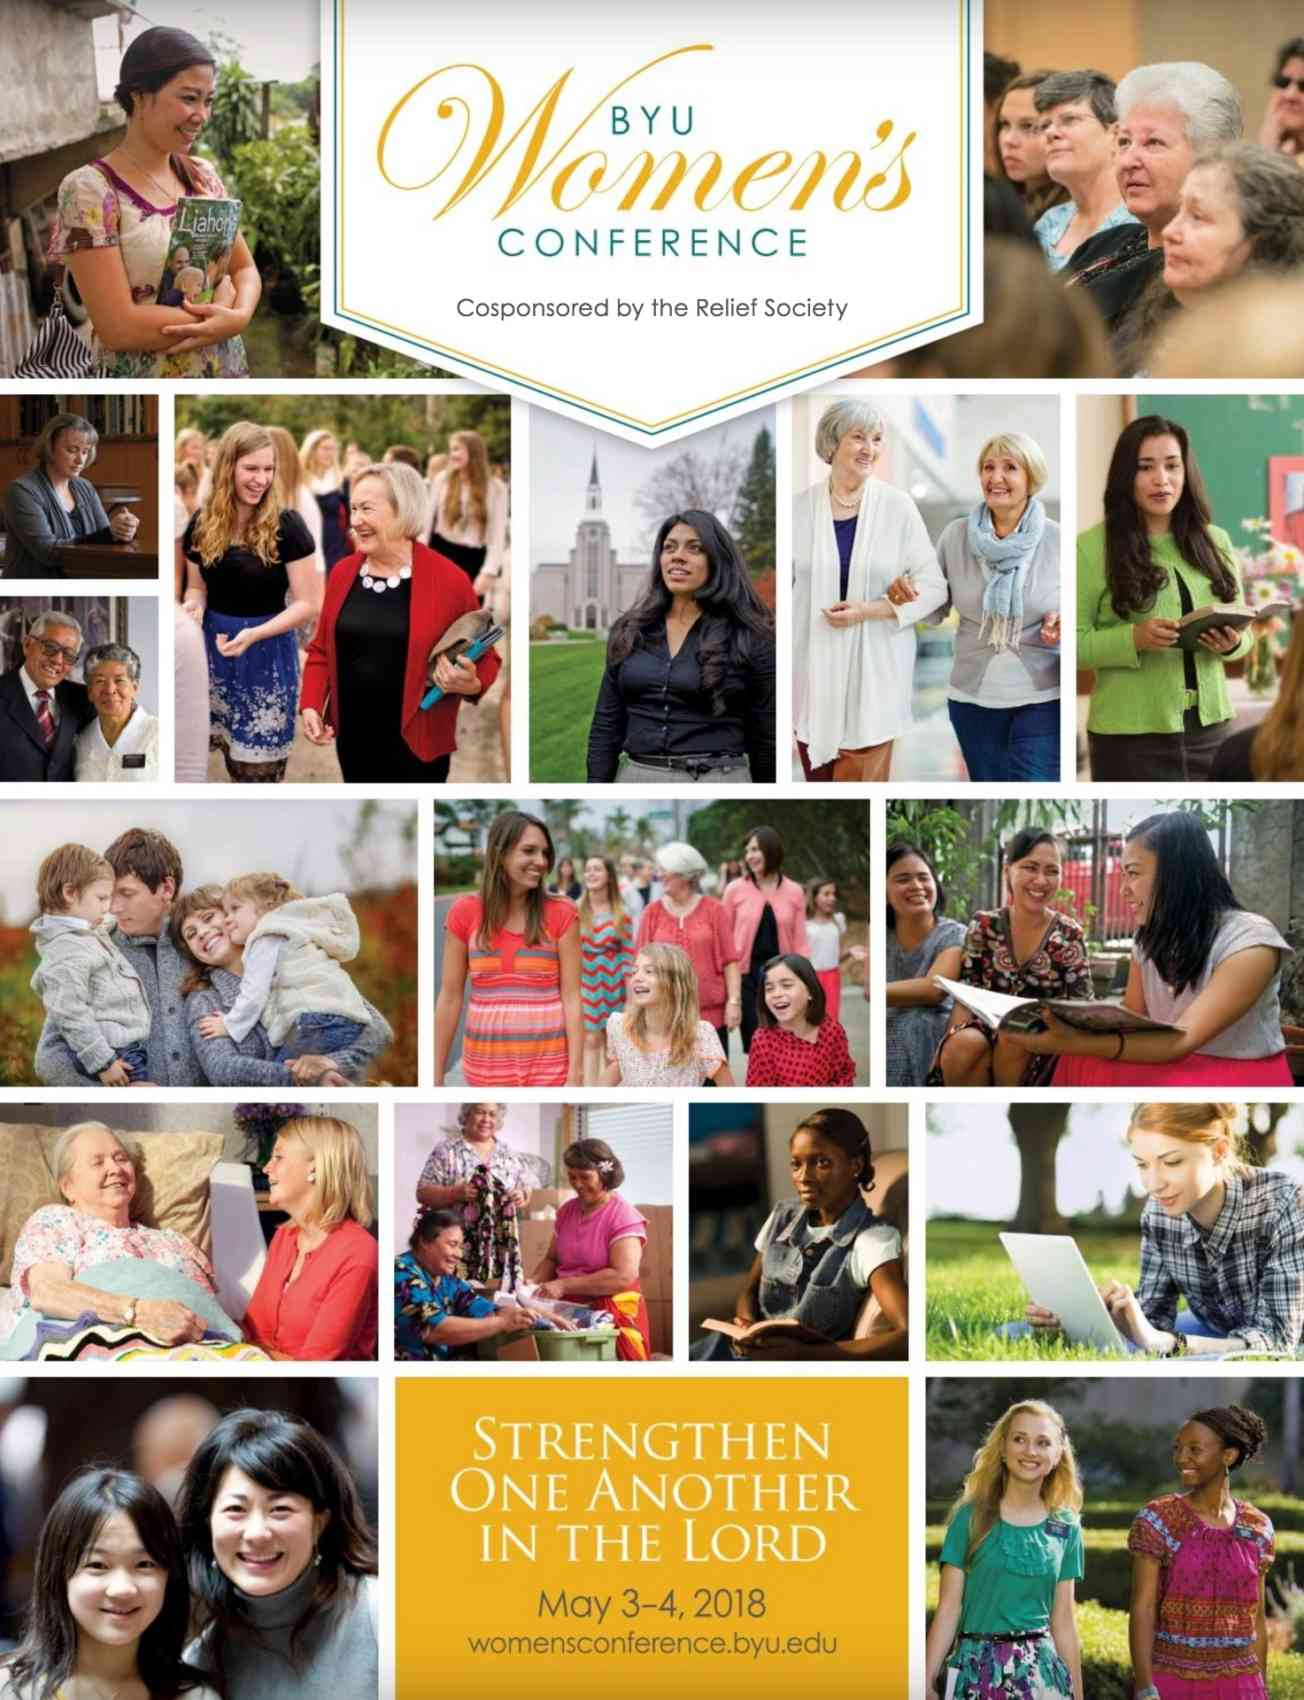 BYU Women's Conference 2018